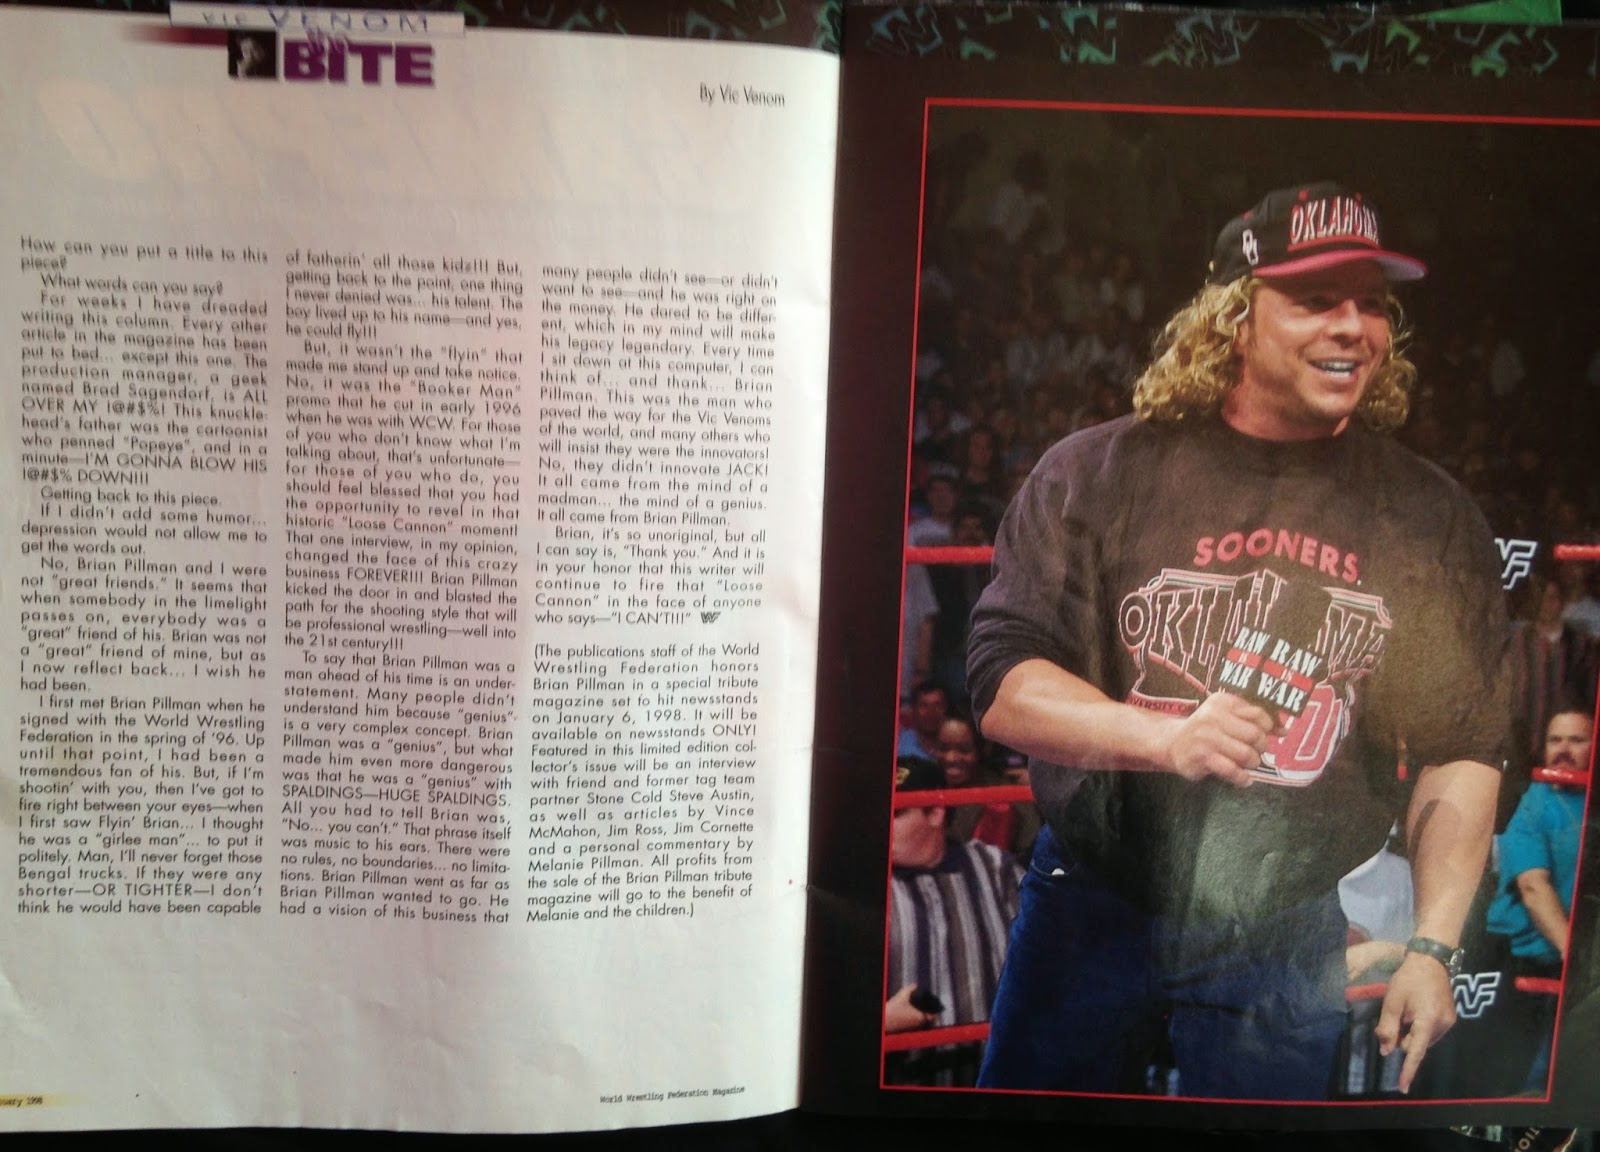 WWF MAGAZINE - JANUARY 1998 -  Vince Russo's tribute to Brian Pillman